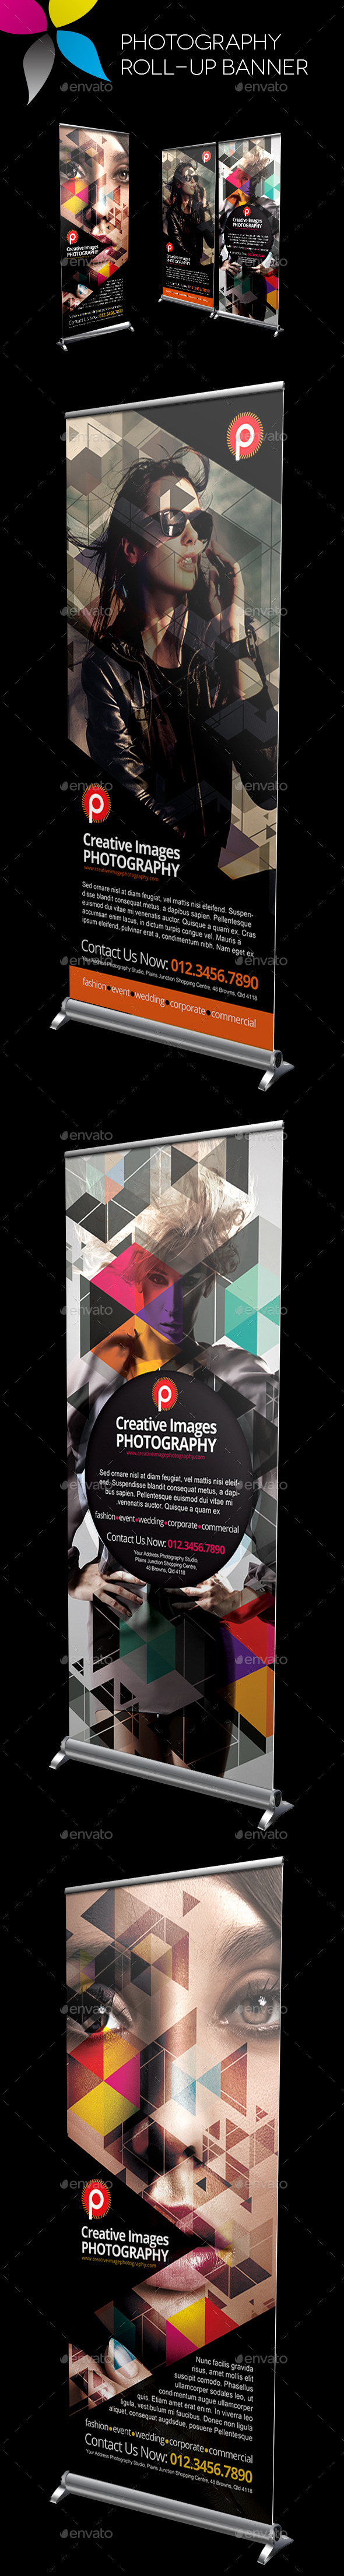 GraphicRiver Photography Roll-Up Banner 10680028